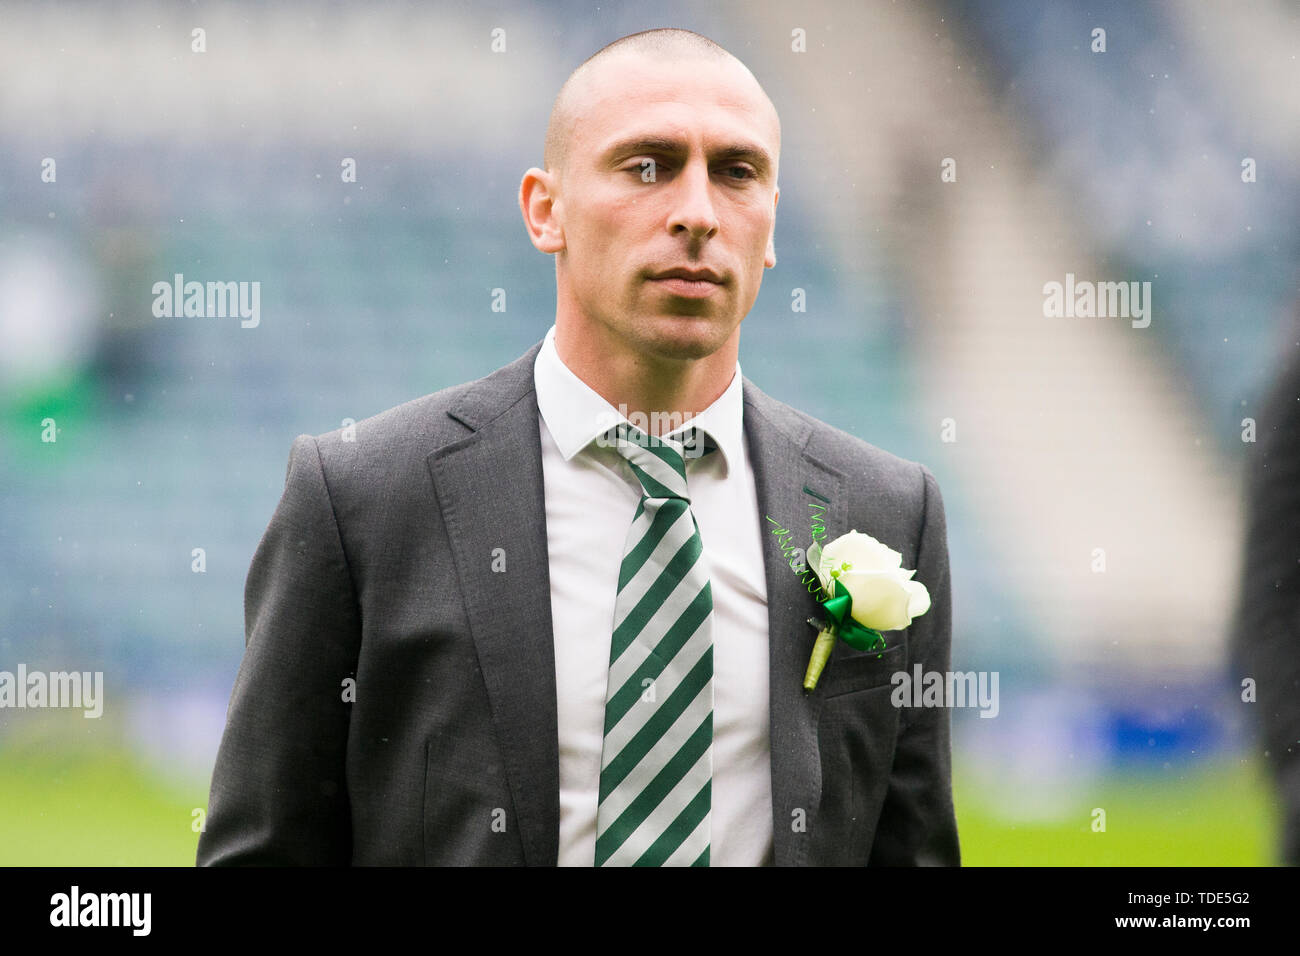 Glasgow, Scotland, May 25th 2019. Scott Brown of Celtic arrives ahead of the William Hill Scottish Cup final between Celtic and Hearts at Hampden Park on May 25th 2019 in Glasgow, Scotland. Editorial use only, licence required for commercial use. No use in Betting, games or a single club/league/player publication. Credit: Scottish Borders Media/Alamy Live News Stock Photo